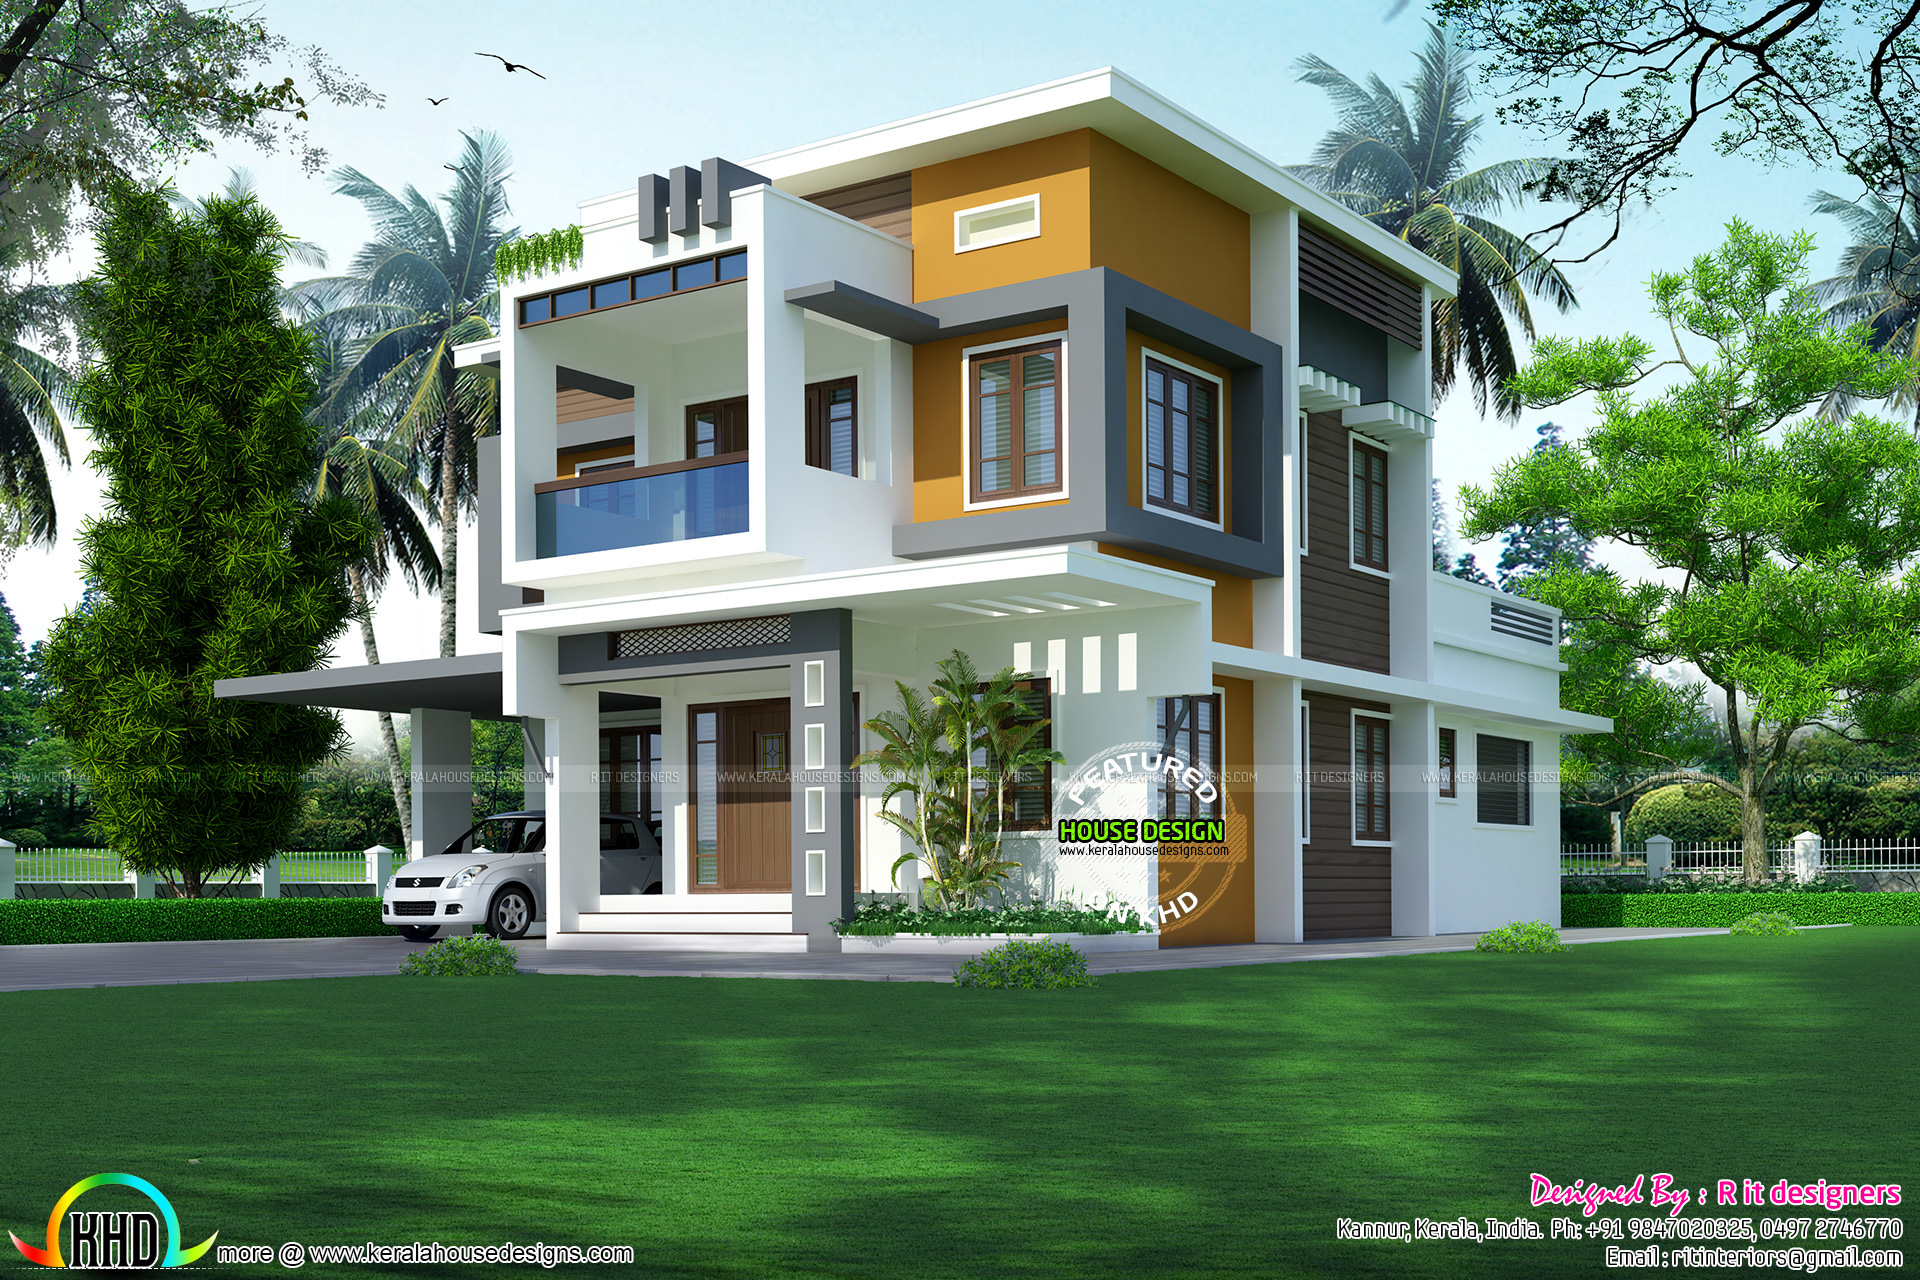 Colorful Modern Home Plan 2400 Sq Ft Kerala Home Design And Floor Plans